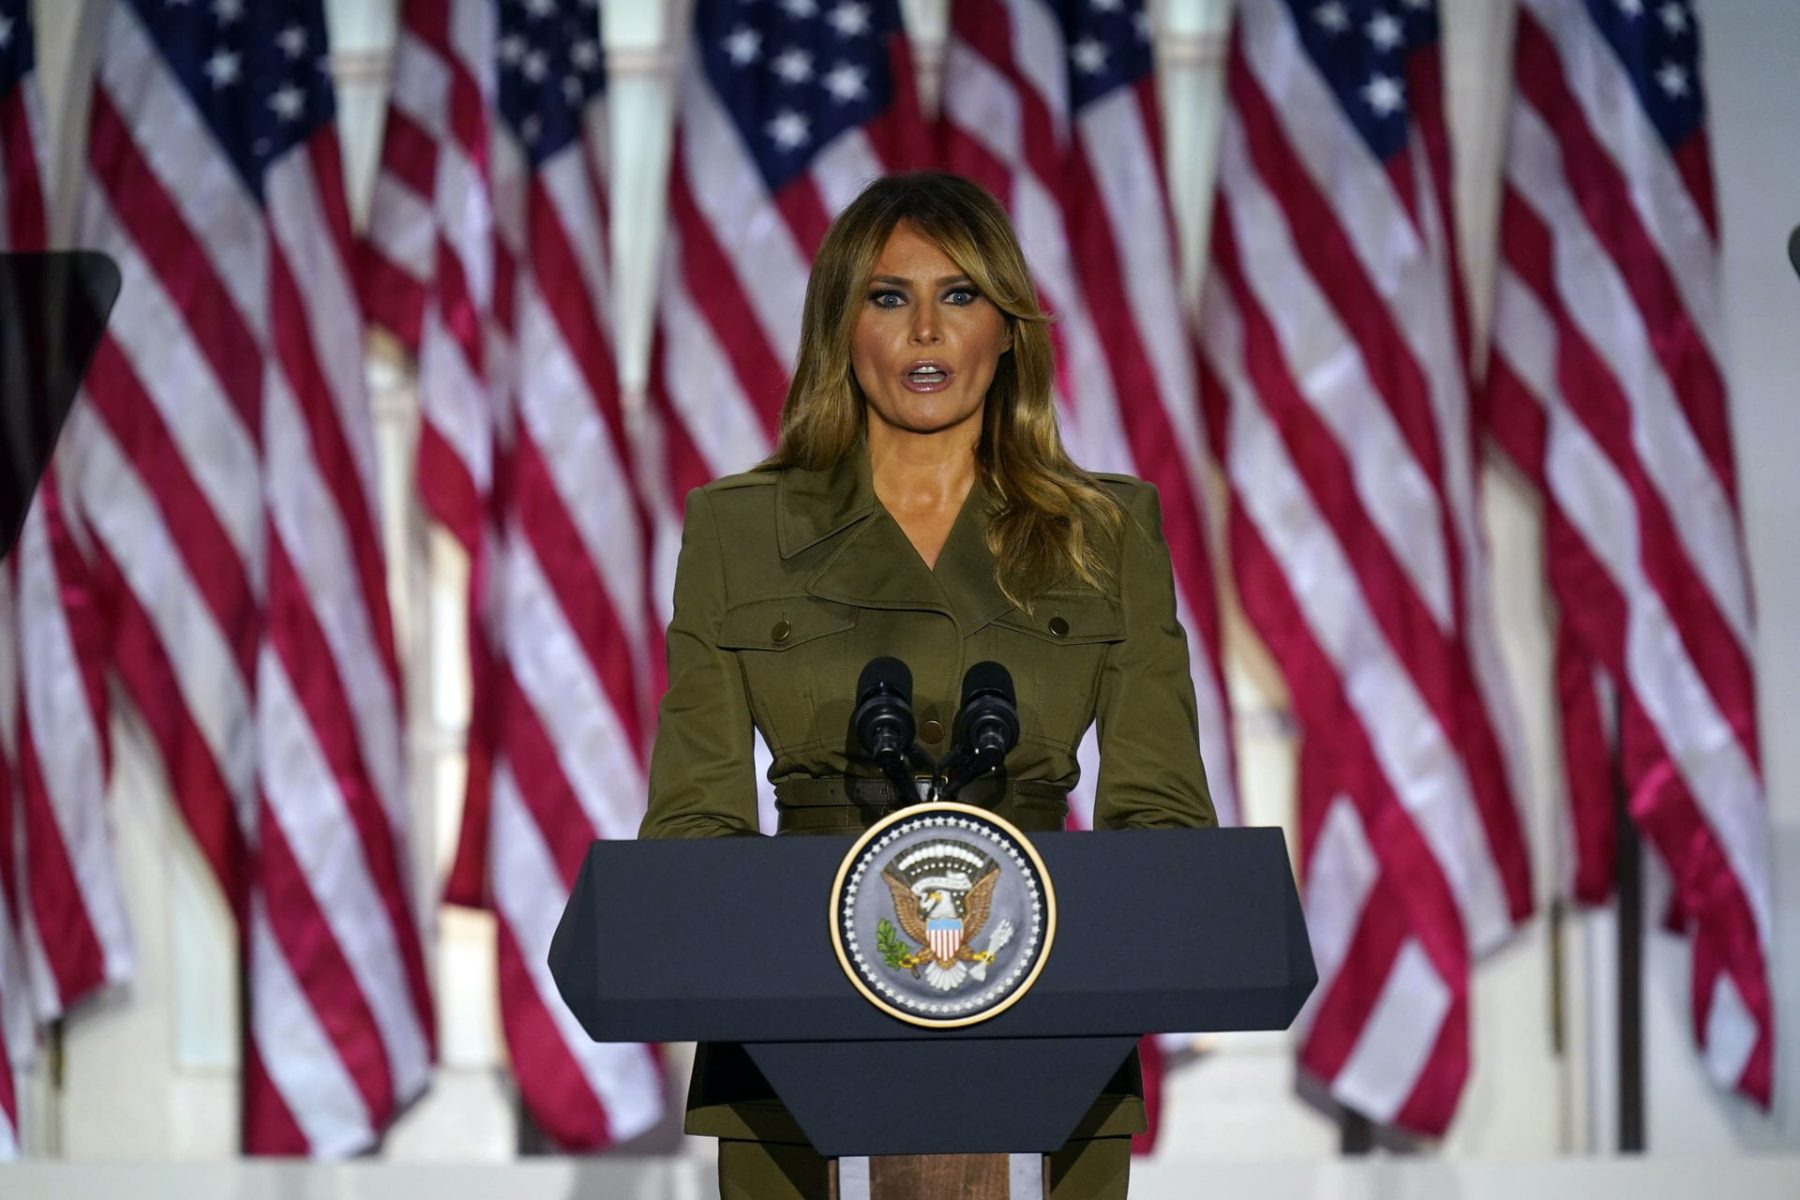 Melania Trump standing in front of a row of American flags.